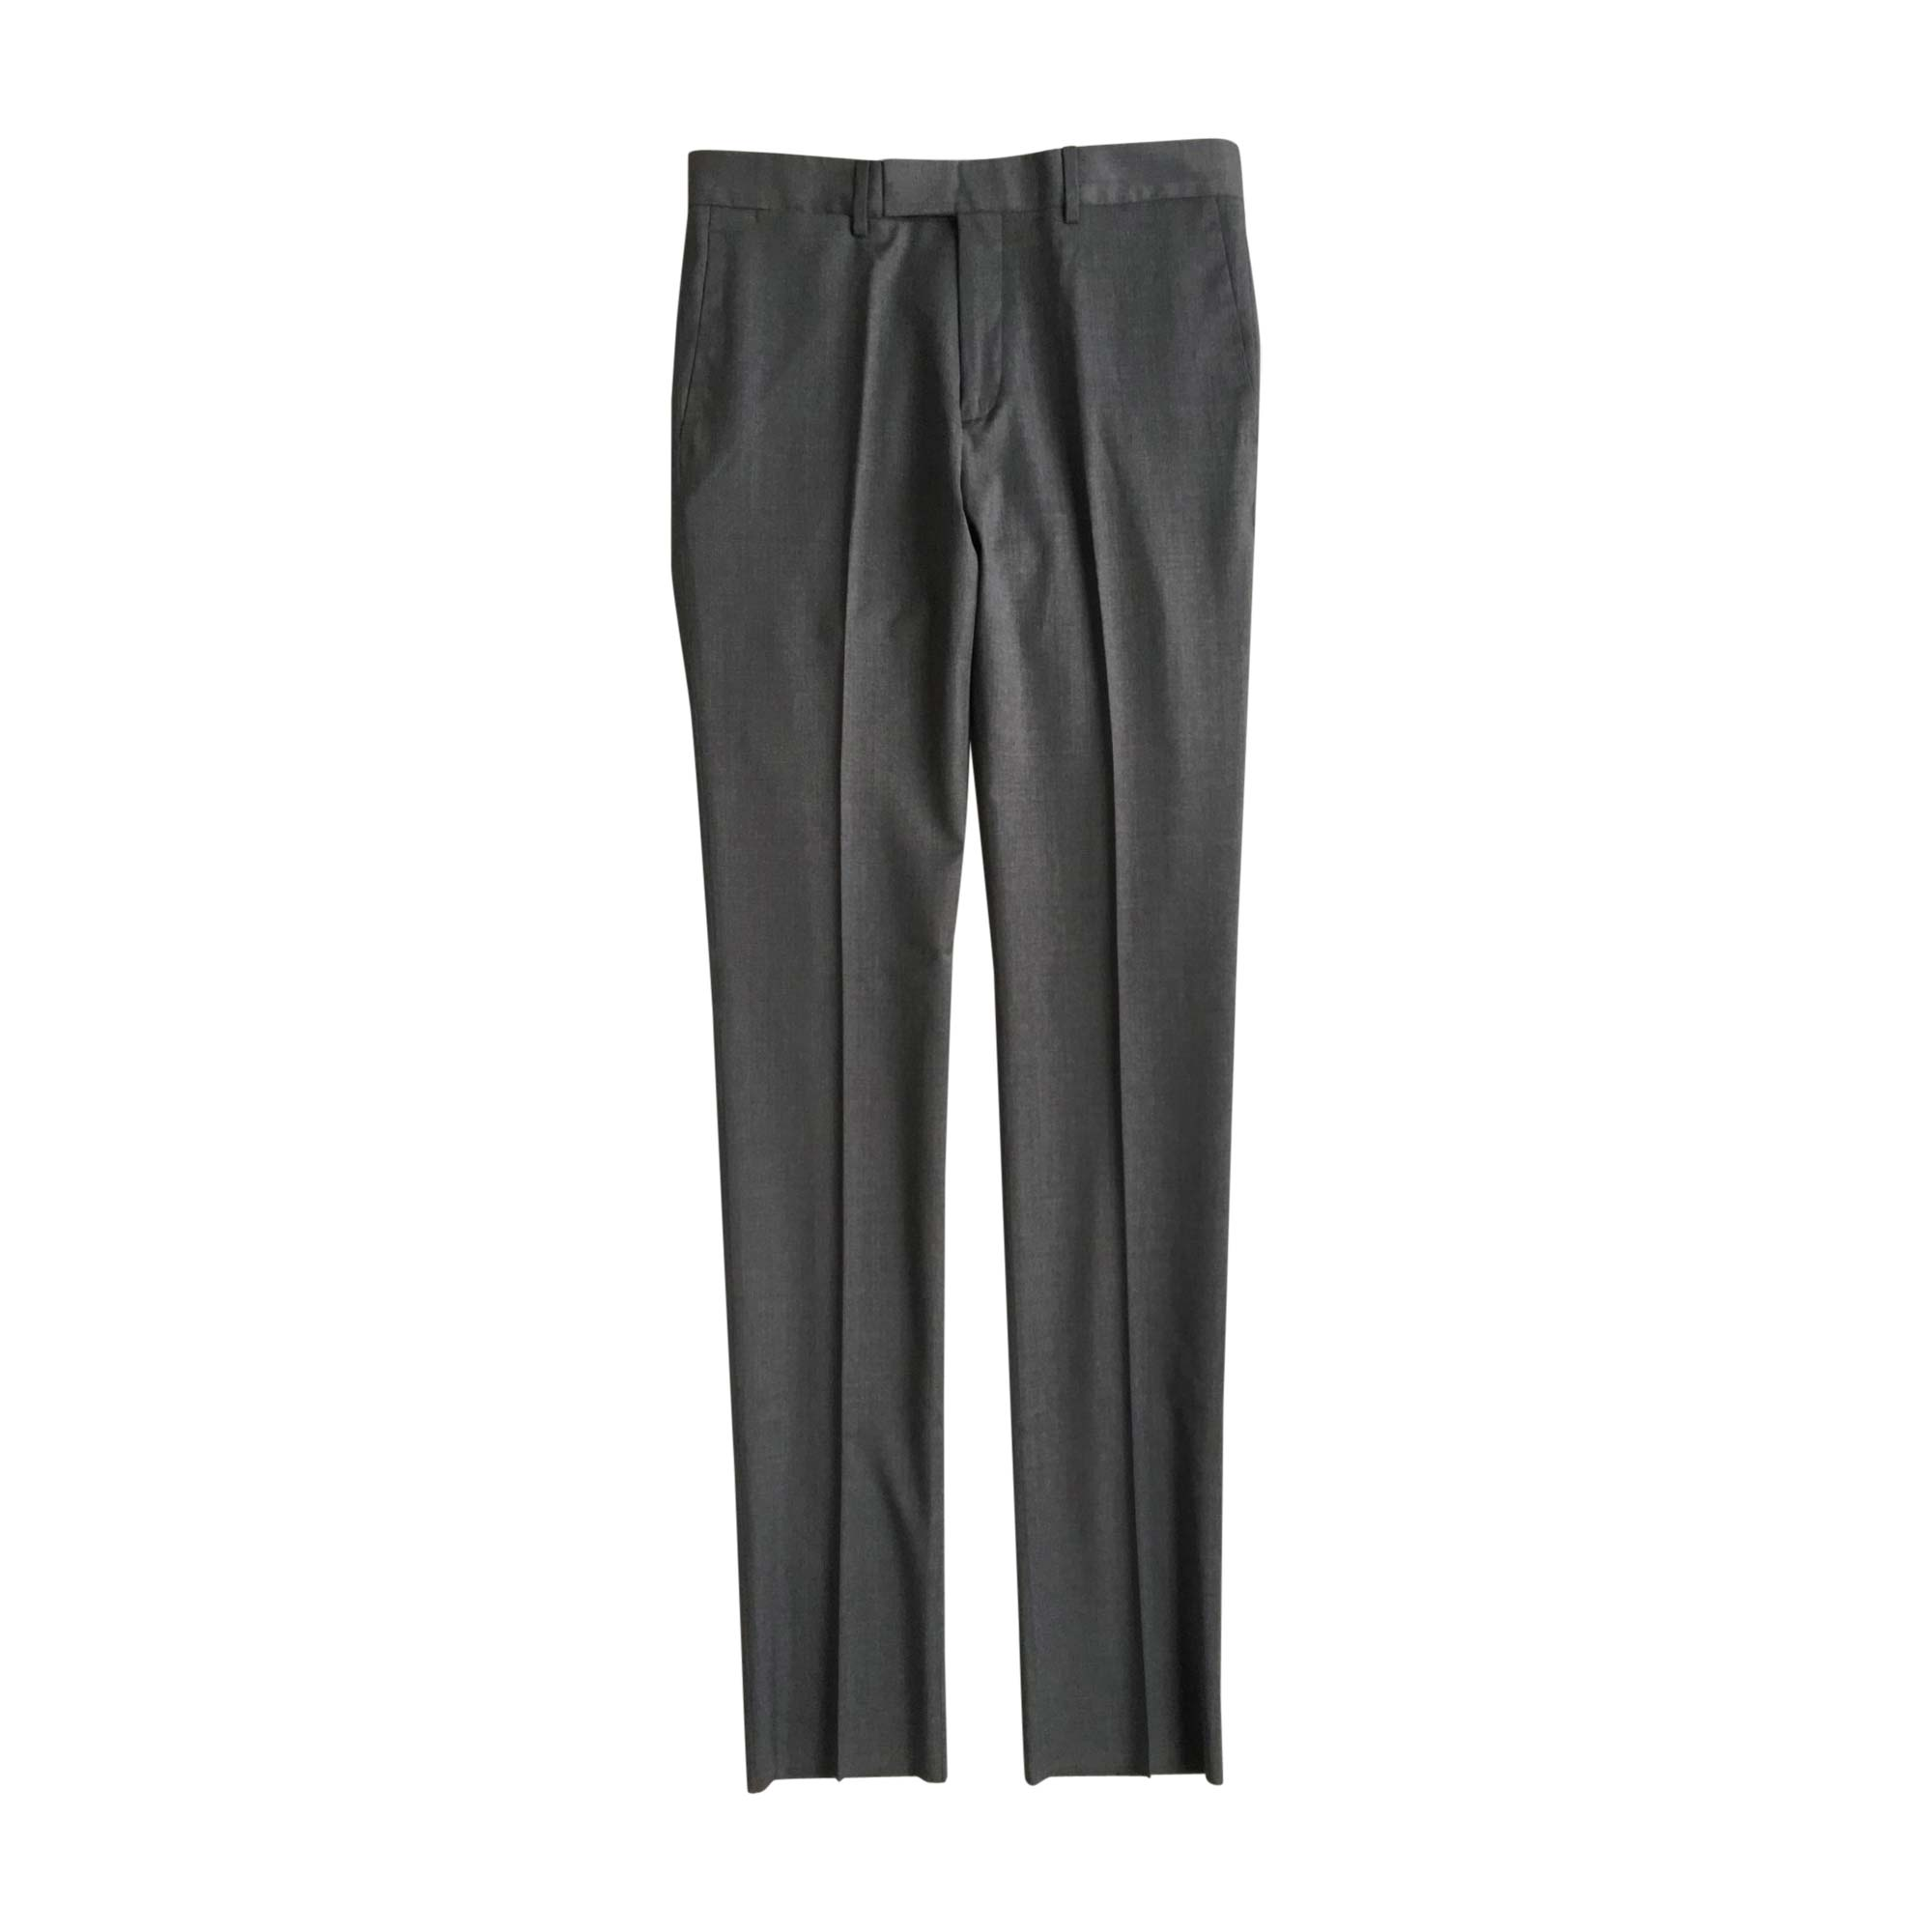 Slim Fit Pants RALPH LAUREN Gray, charcoal